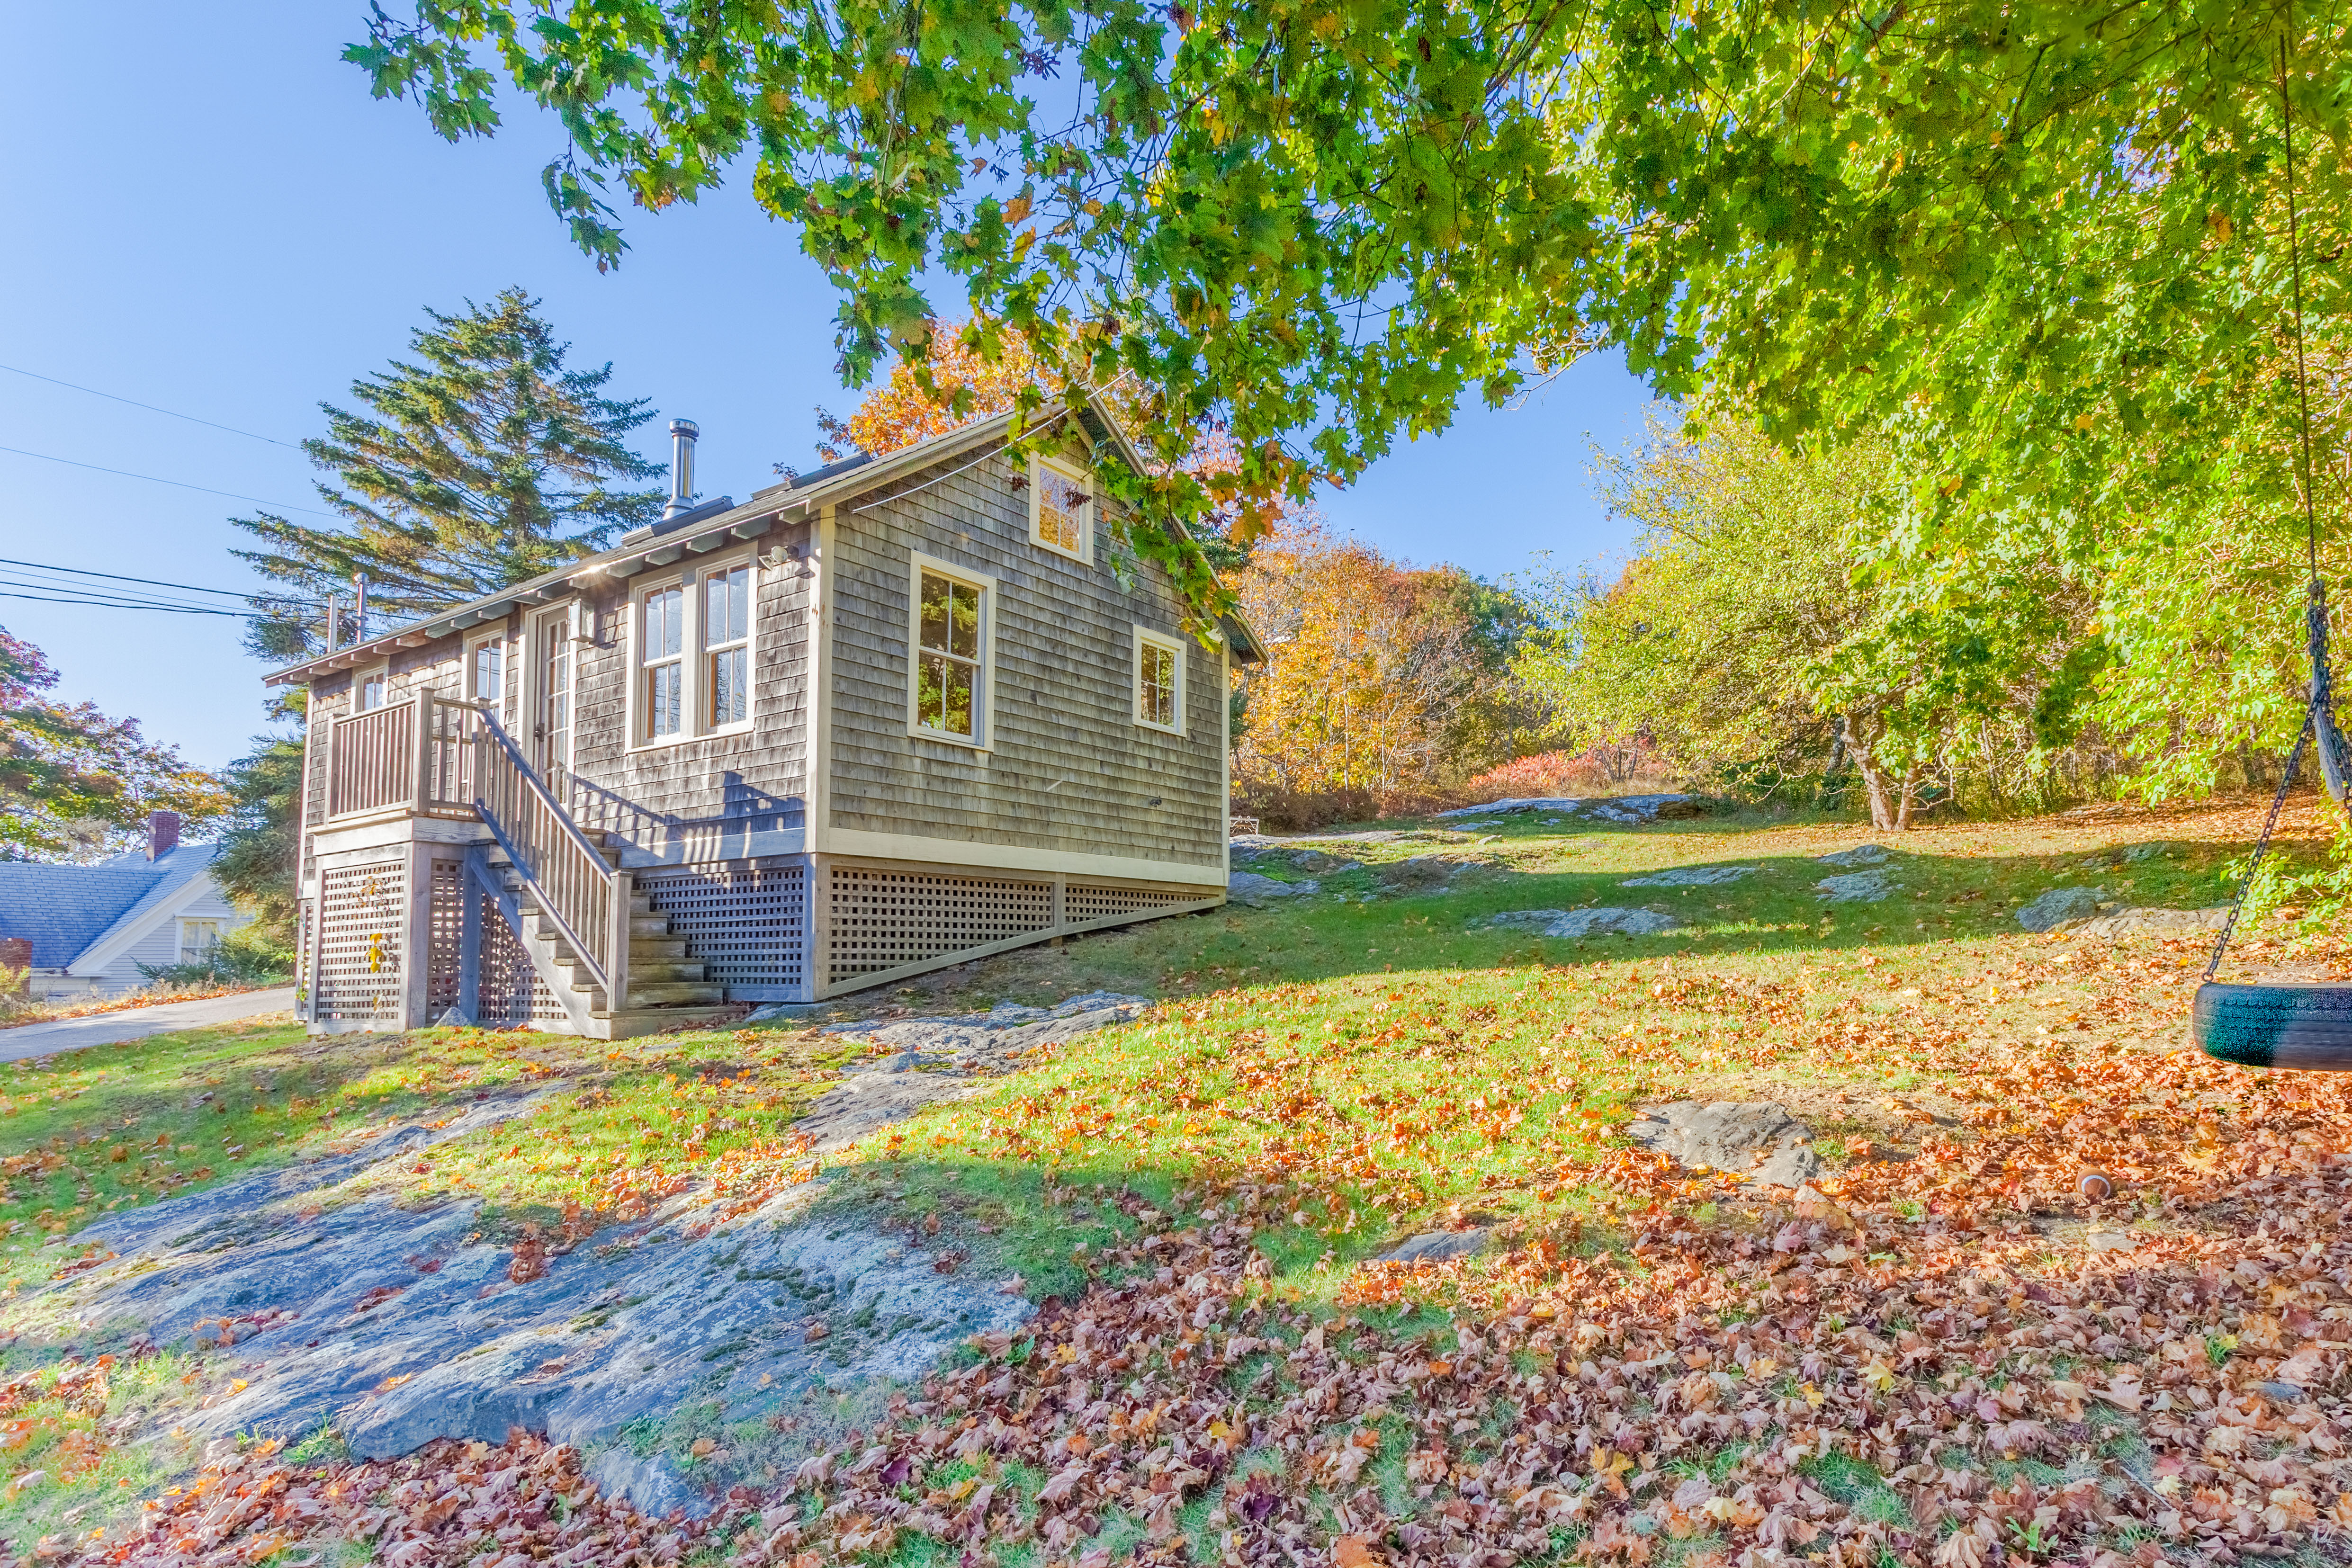 South Bristol ME Vacation Rental Welcome to South